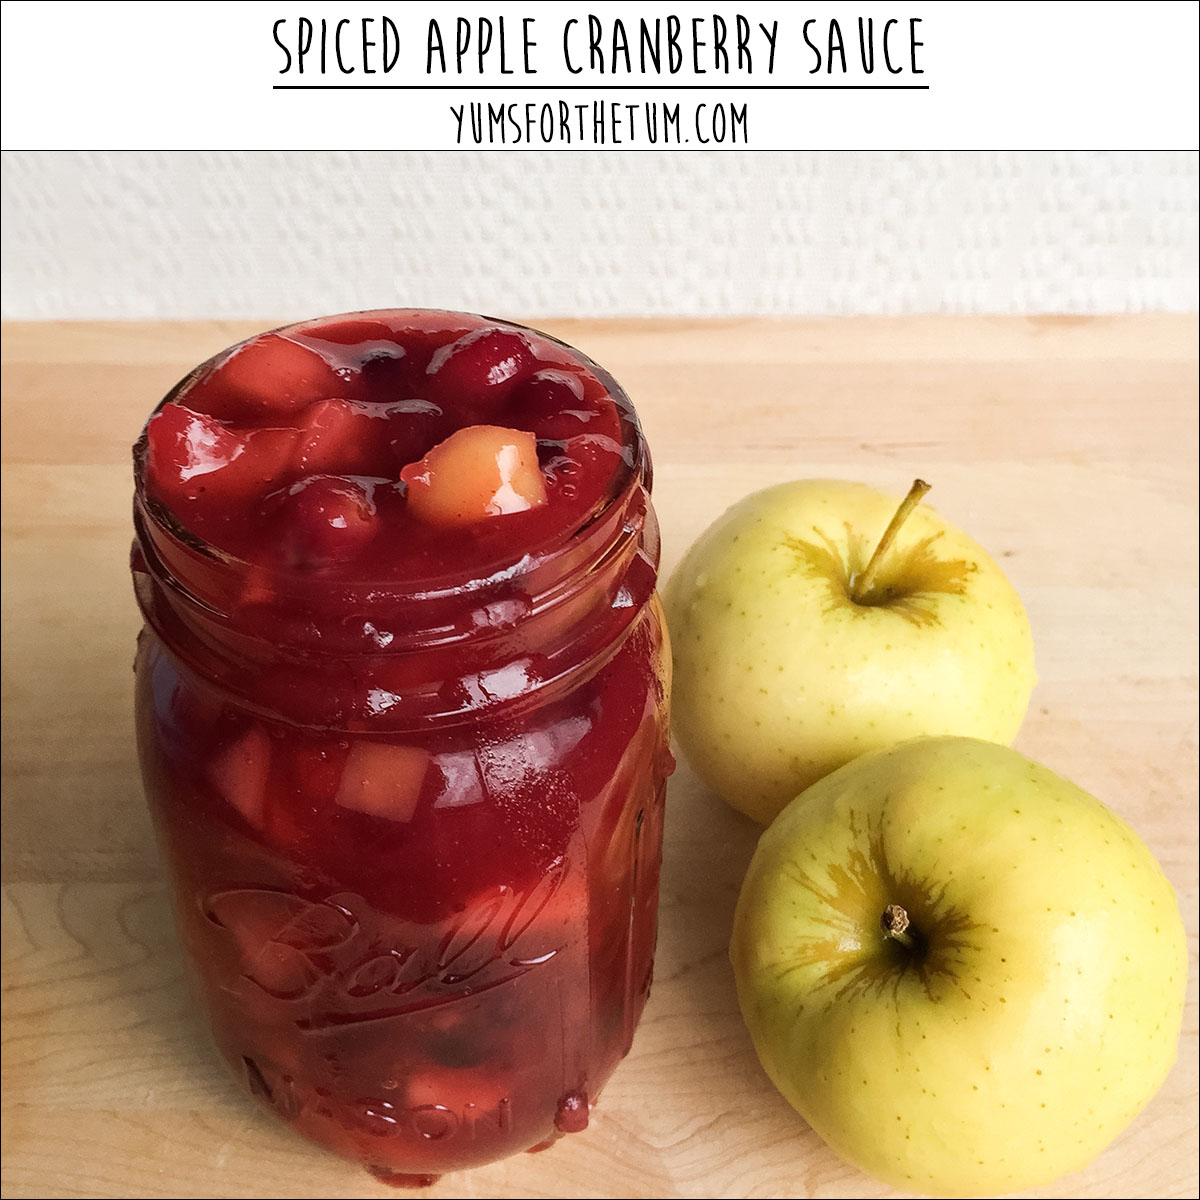 Spiced Apple Cranberry Sauce